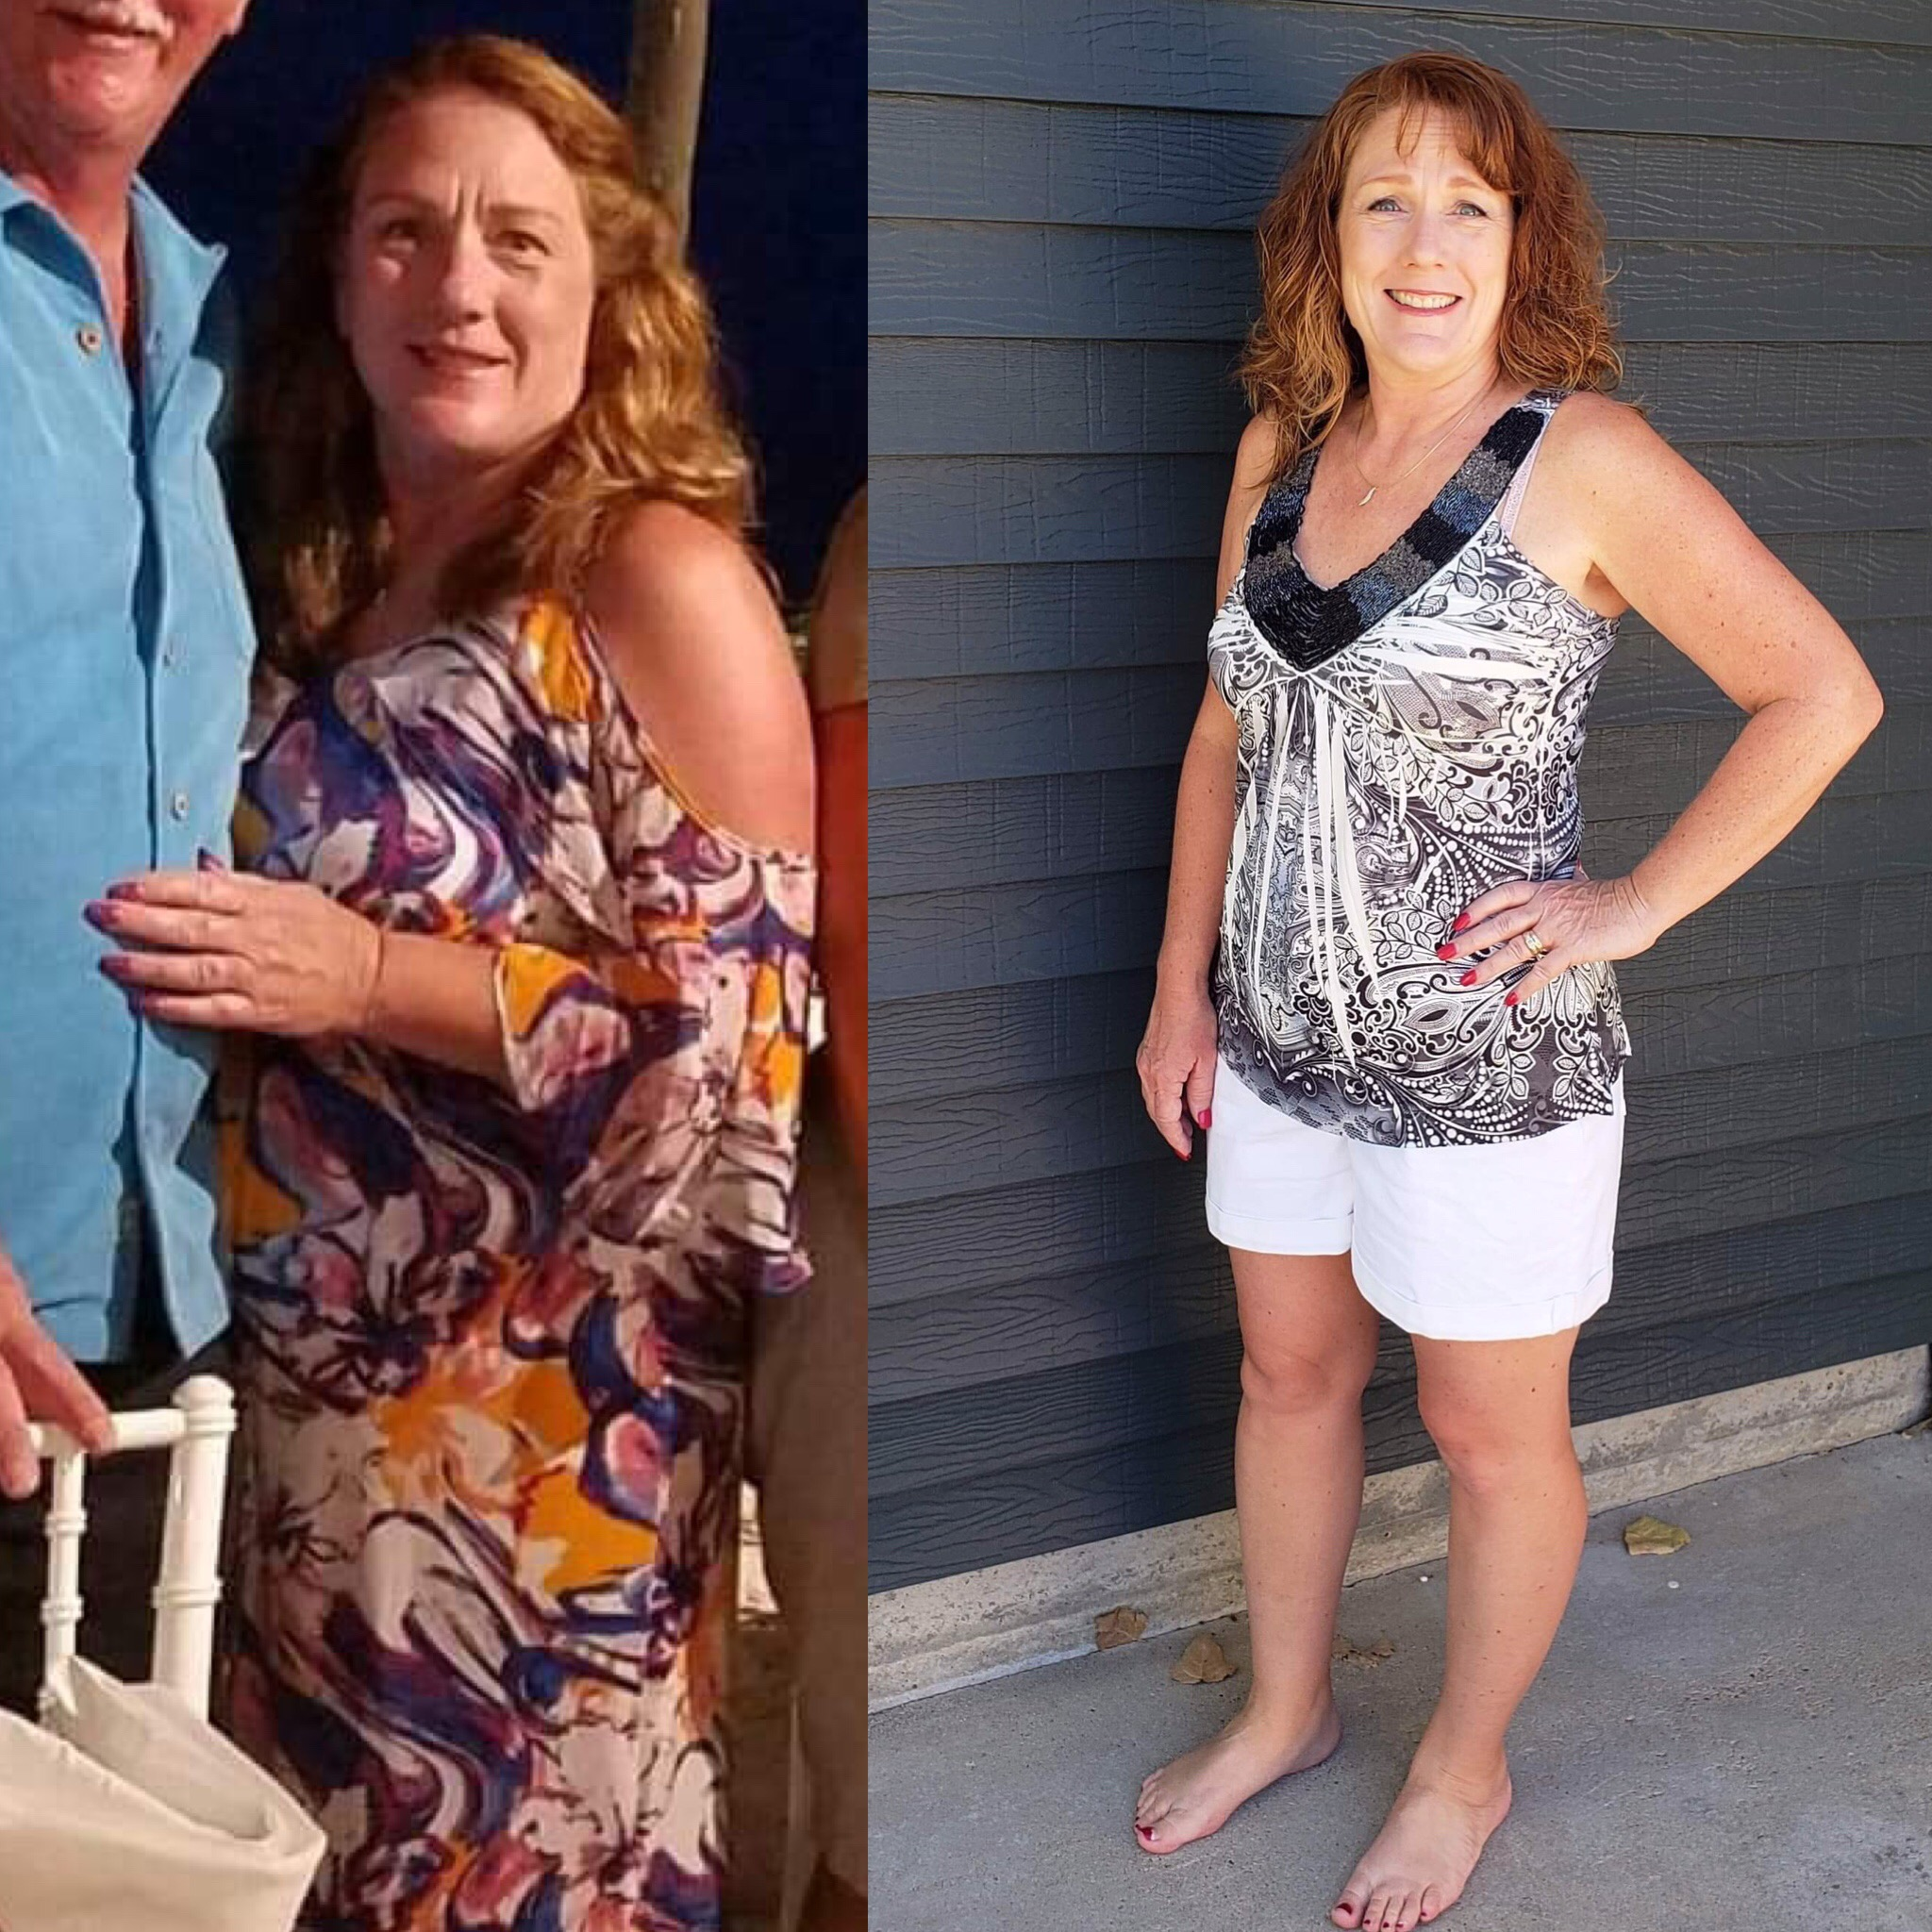 Tammy lost 24 pounds with CleanFoodCrush